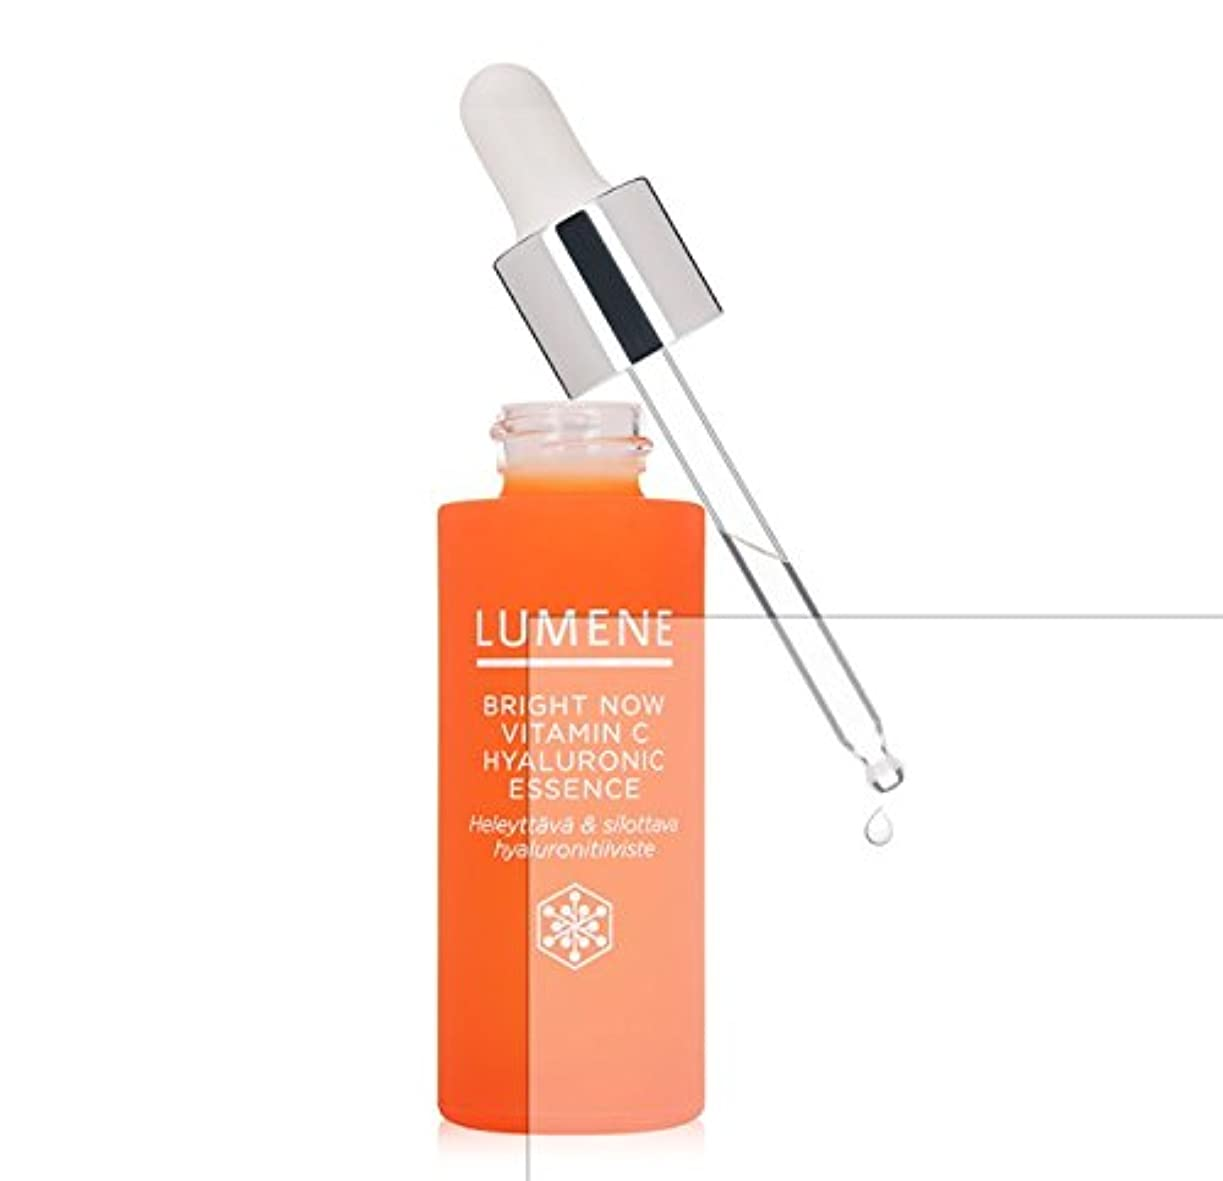 行列引っ張る冊子Lumene Bright Now Vitamin C Hyaluronic Essence (1 fl oz.) 美容液 [並行輸入品]